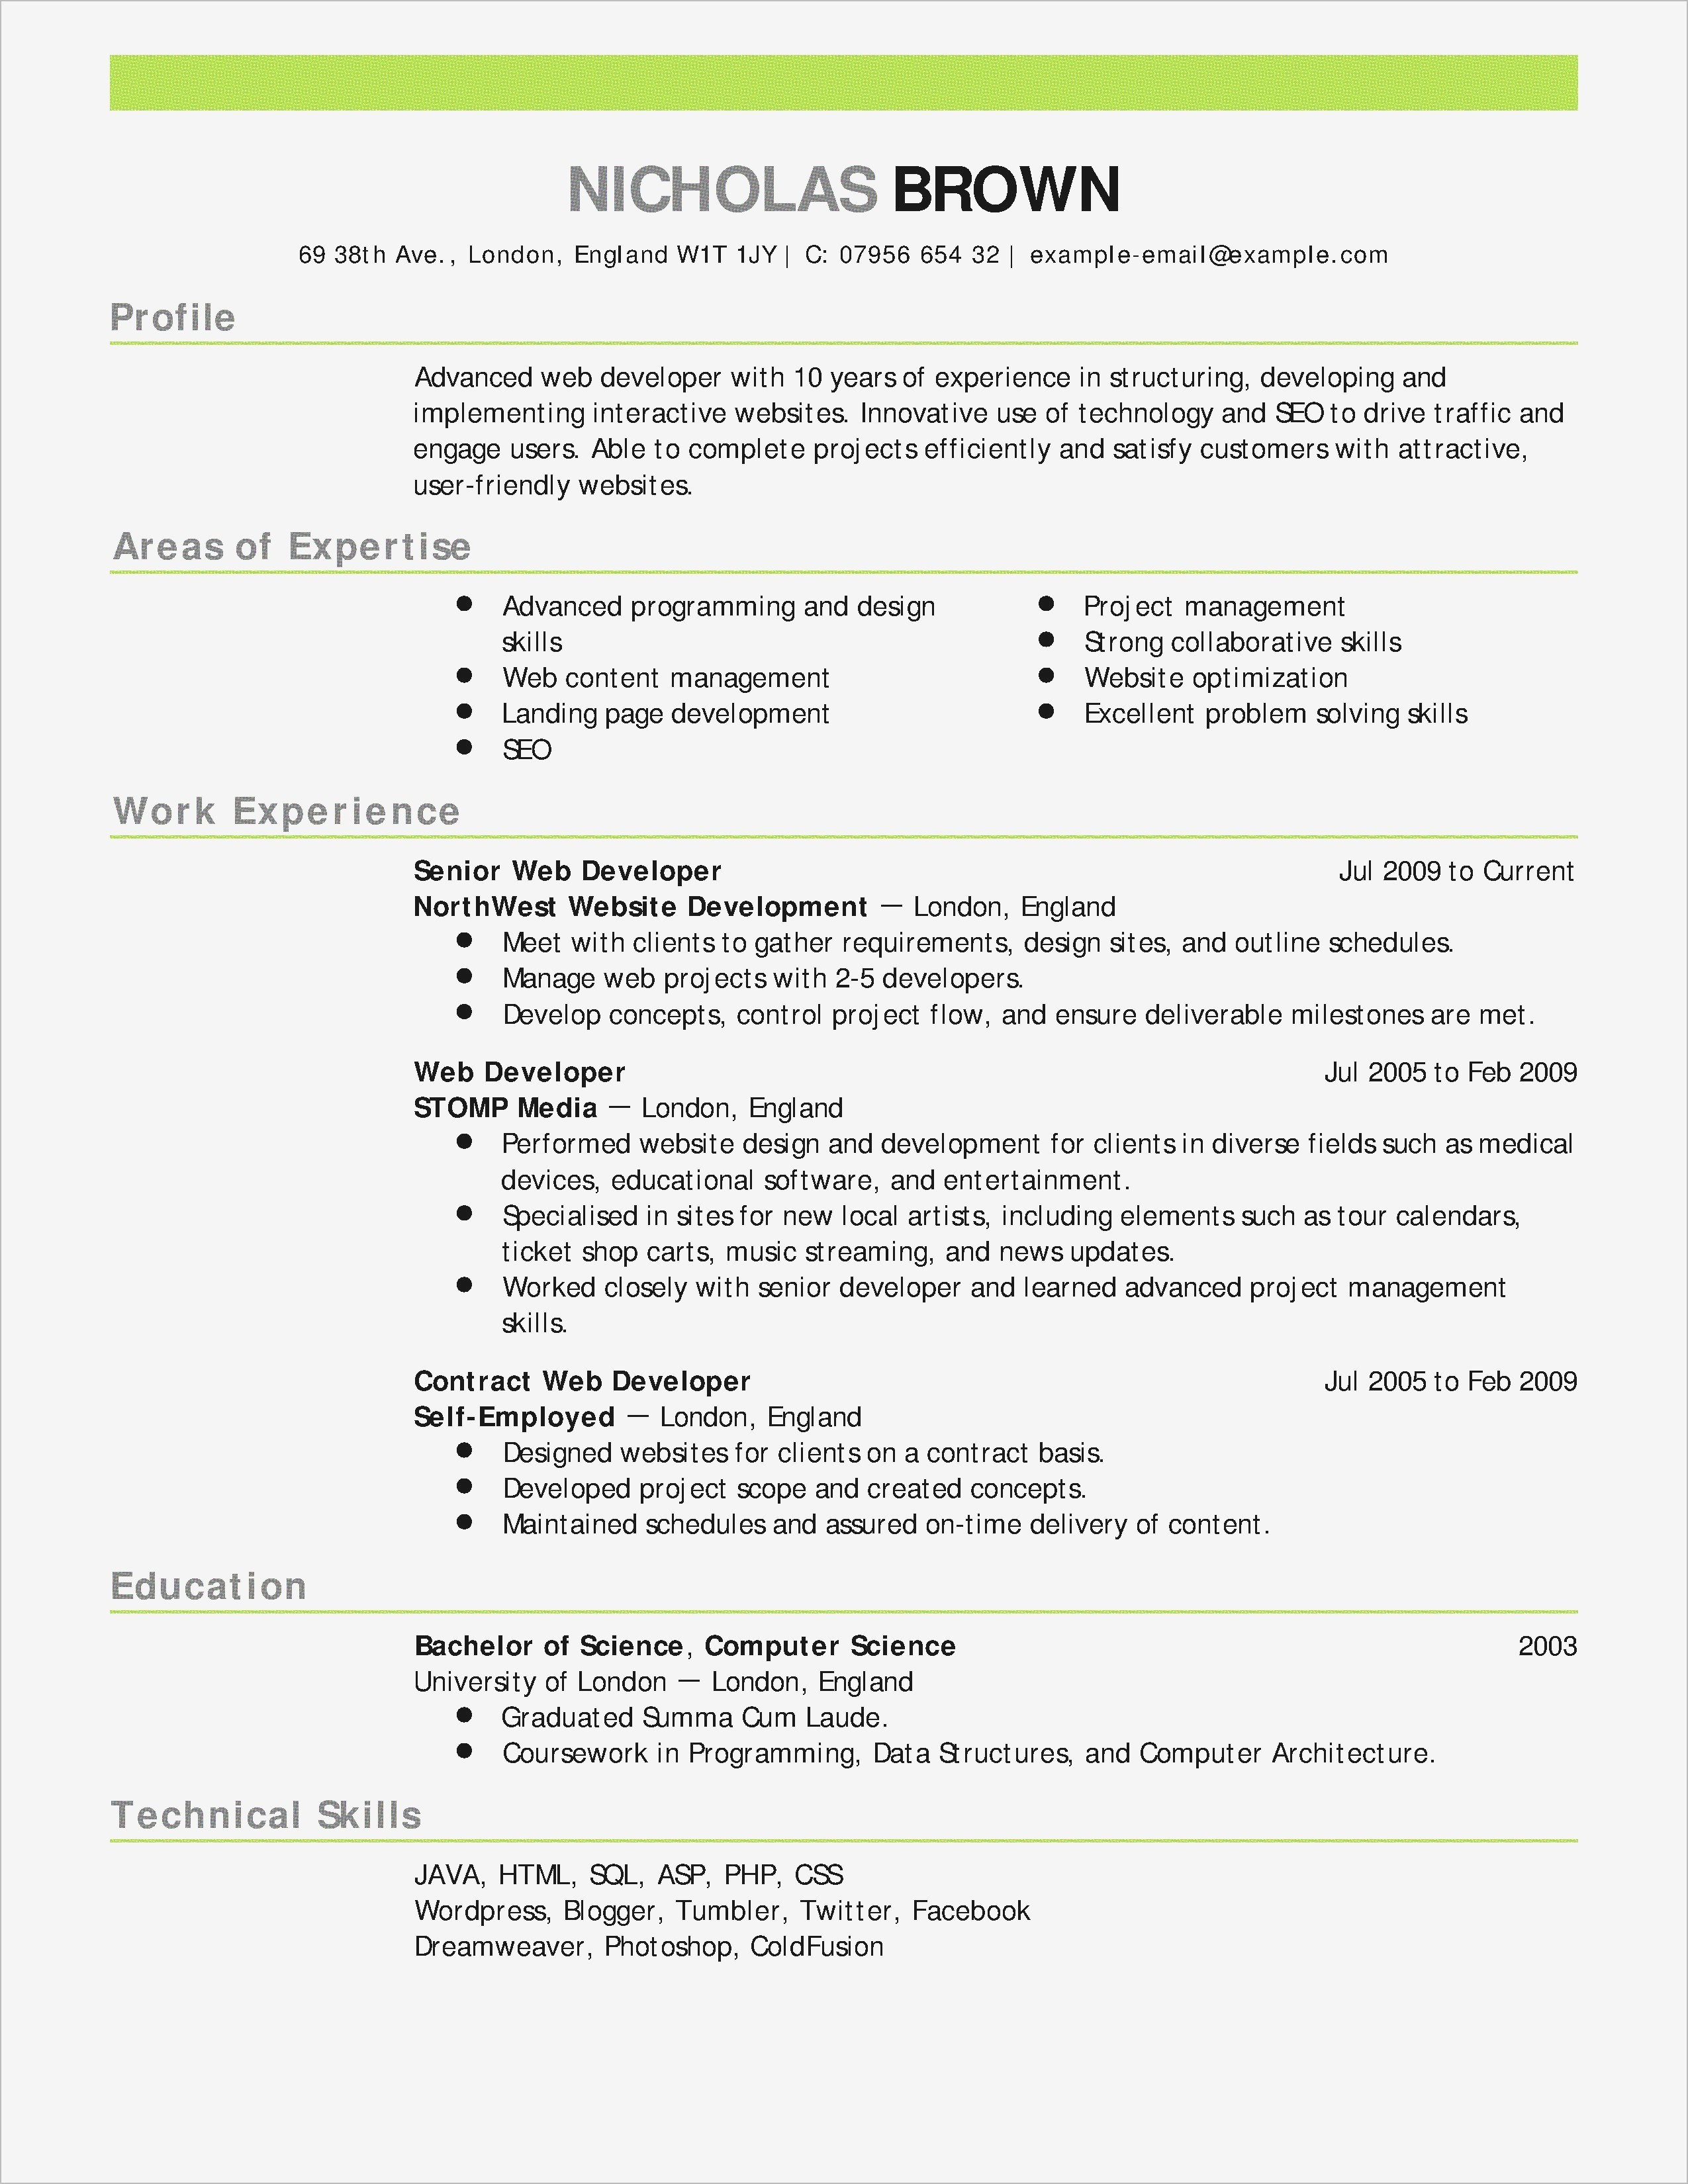 cover letter template examples Collection-maintenance cover letter template maintenance experience resume reference elegant cover letter writing service awesome paralegal resume 0d 6g 16-e